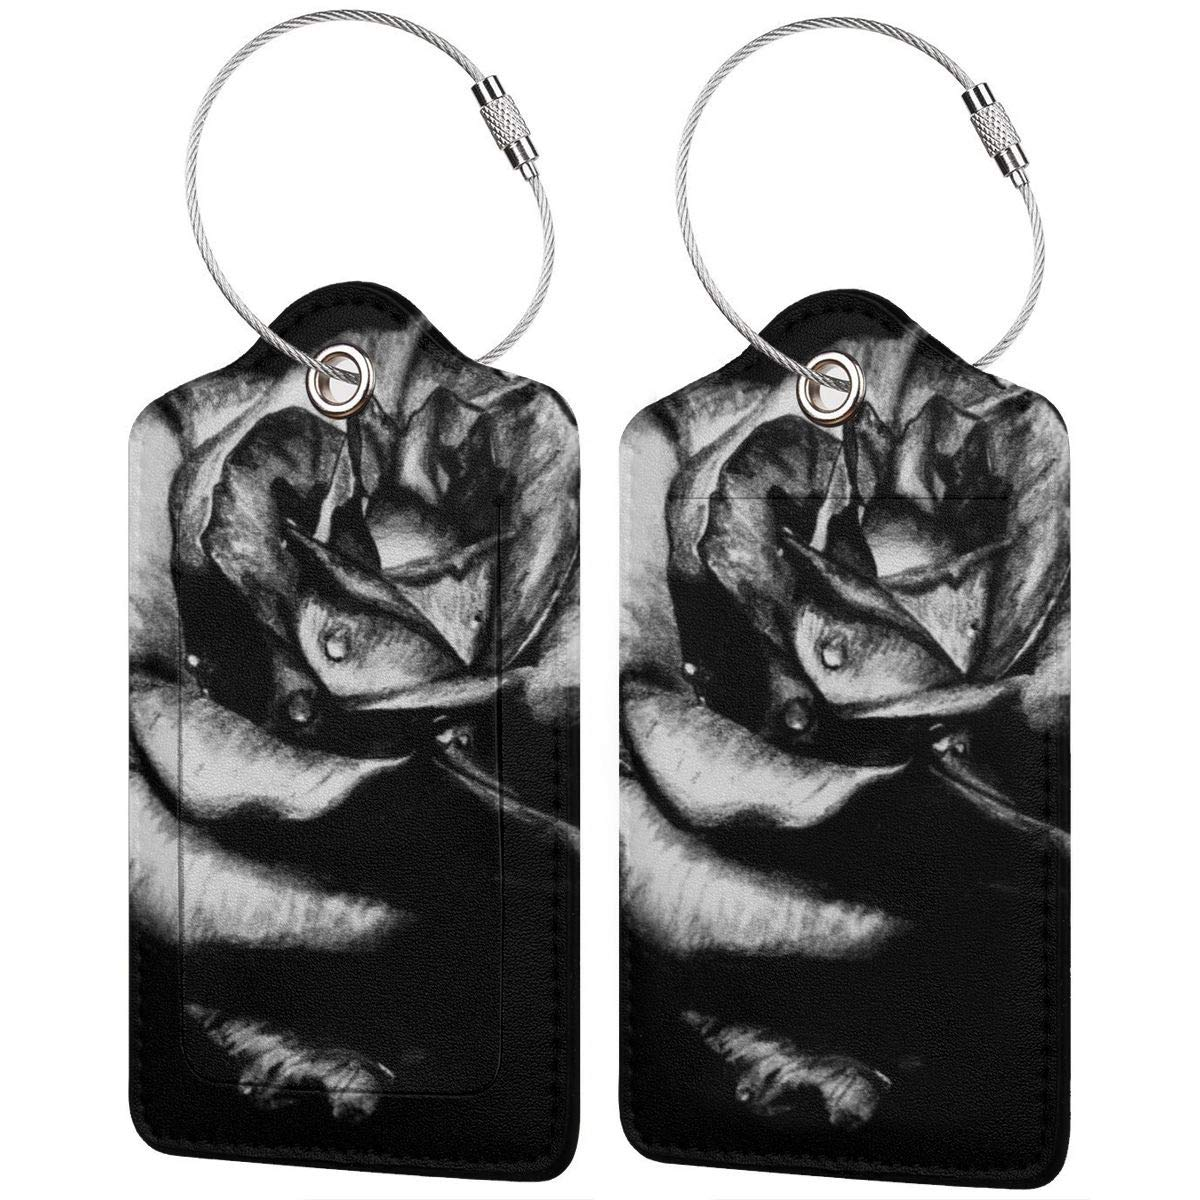 Black Rose Luggage Tag Label Travel Bag Label With Privacy Cover Luggage Tag Leather Personalized Suitcase Tag Travel Accessories